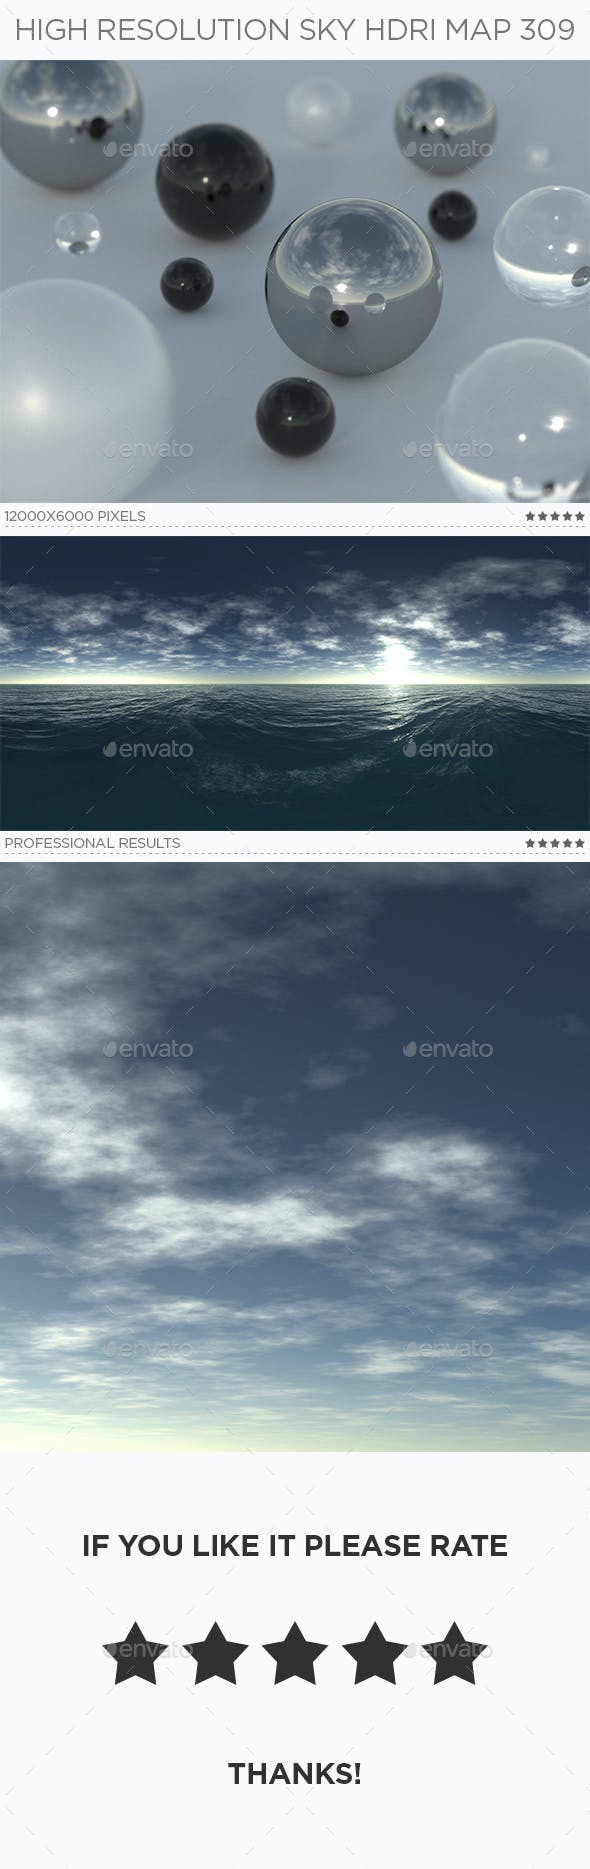 High Resolution Sky HDRi Map 309 - 3DOcean Item for Sale